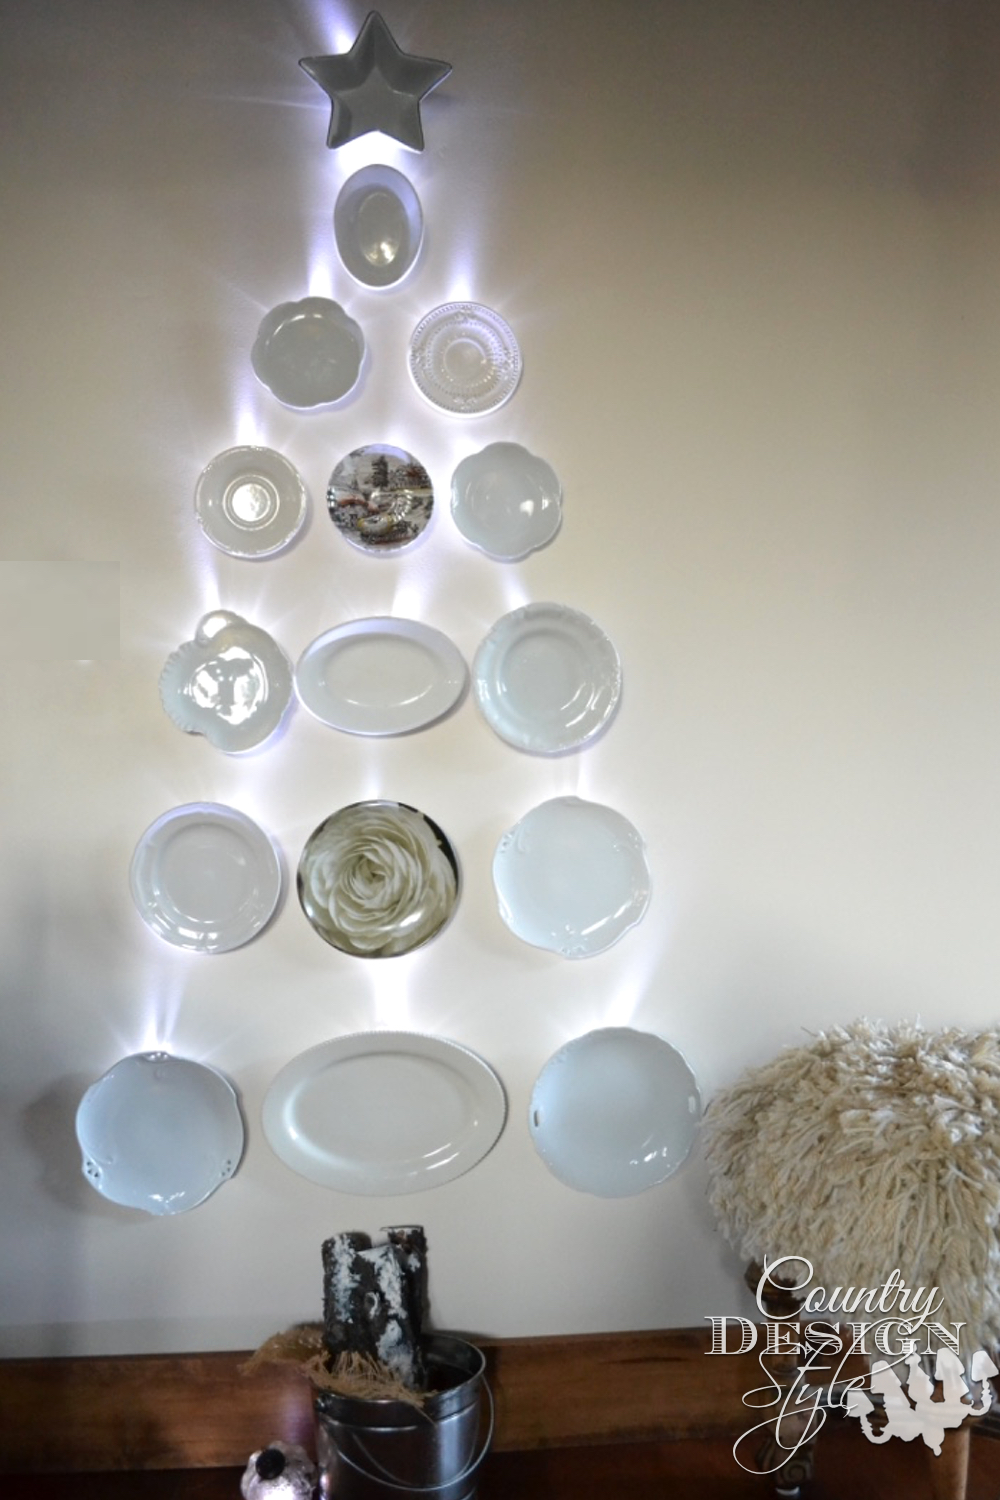 Dish Christmas Tree | Country Design Style | countrydesignstyle.com